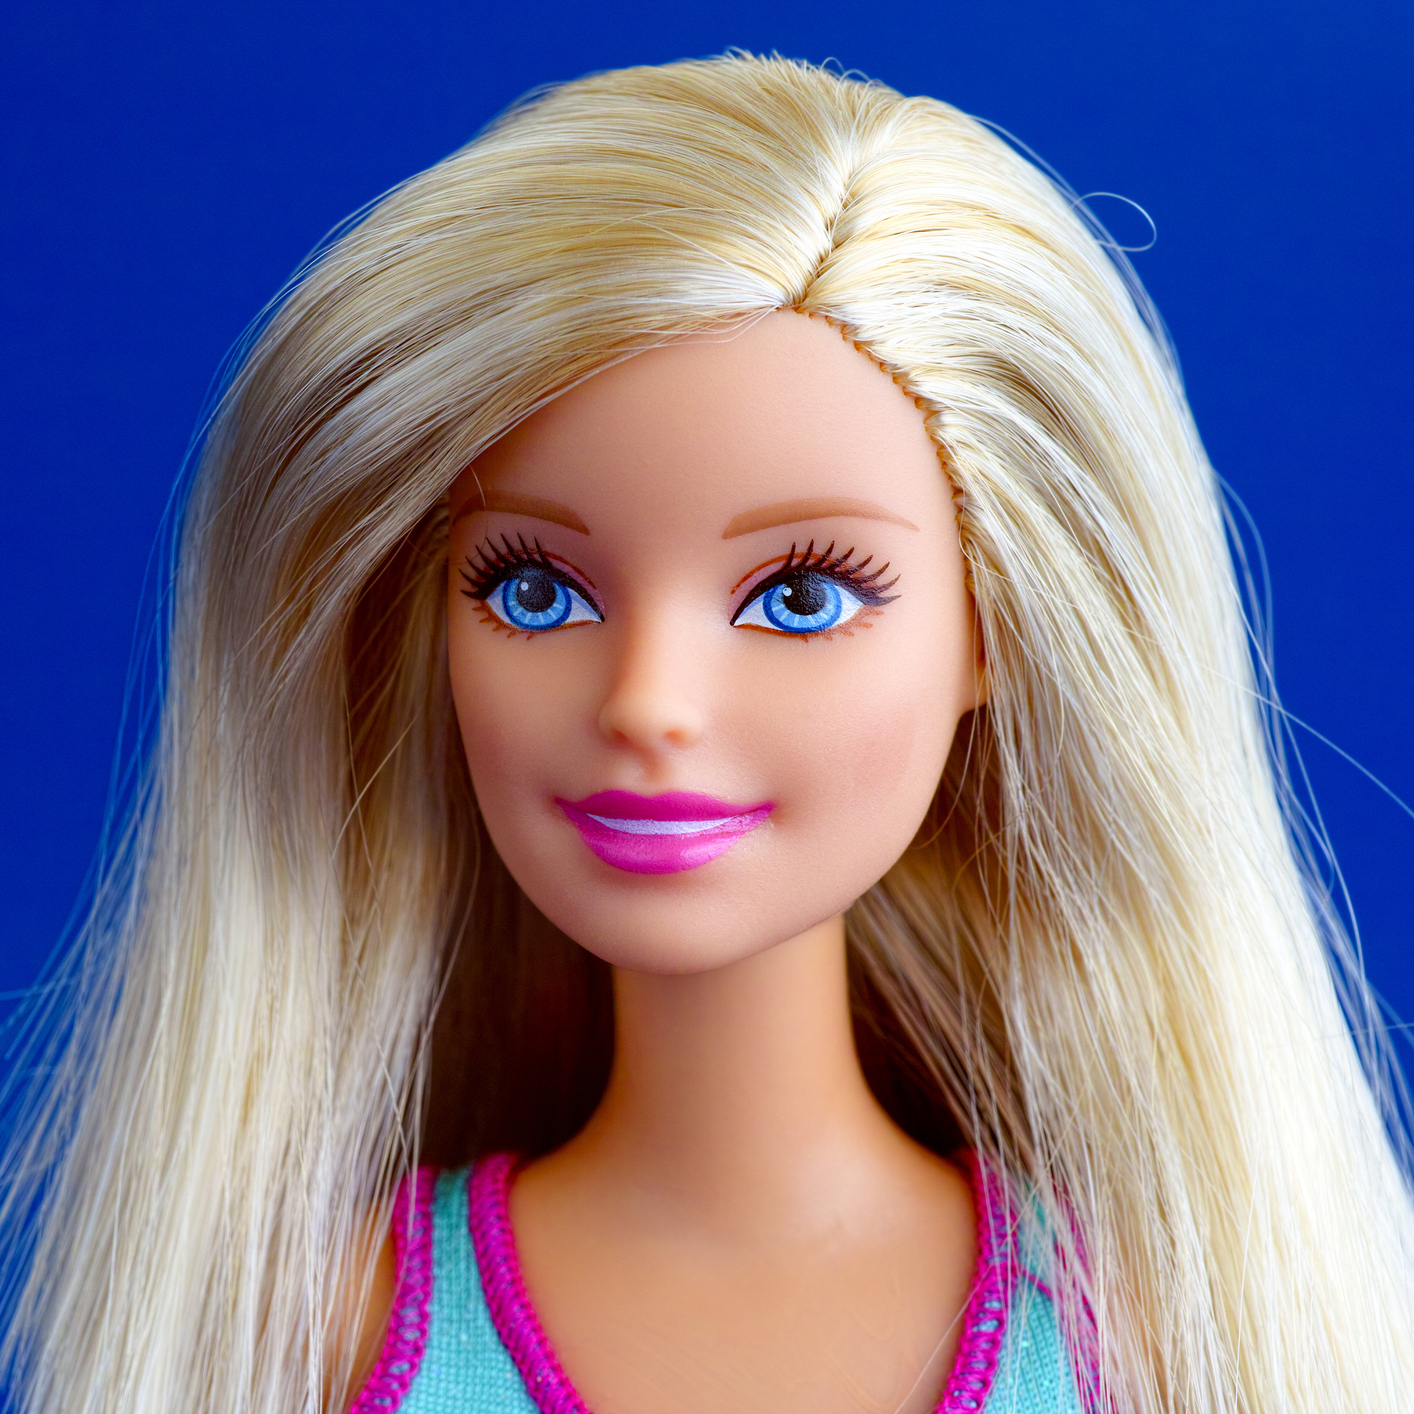 Most Popular Barbie Dolls Of All Time  247 Wall St